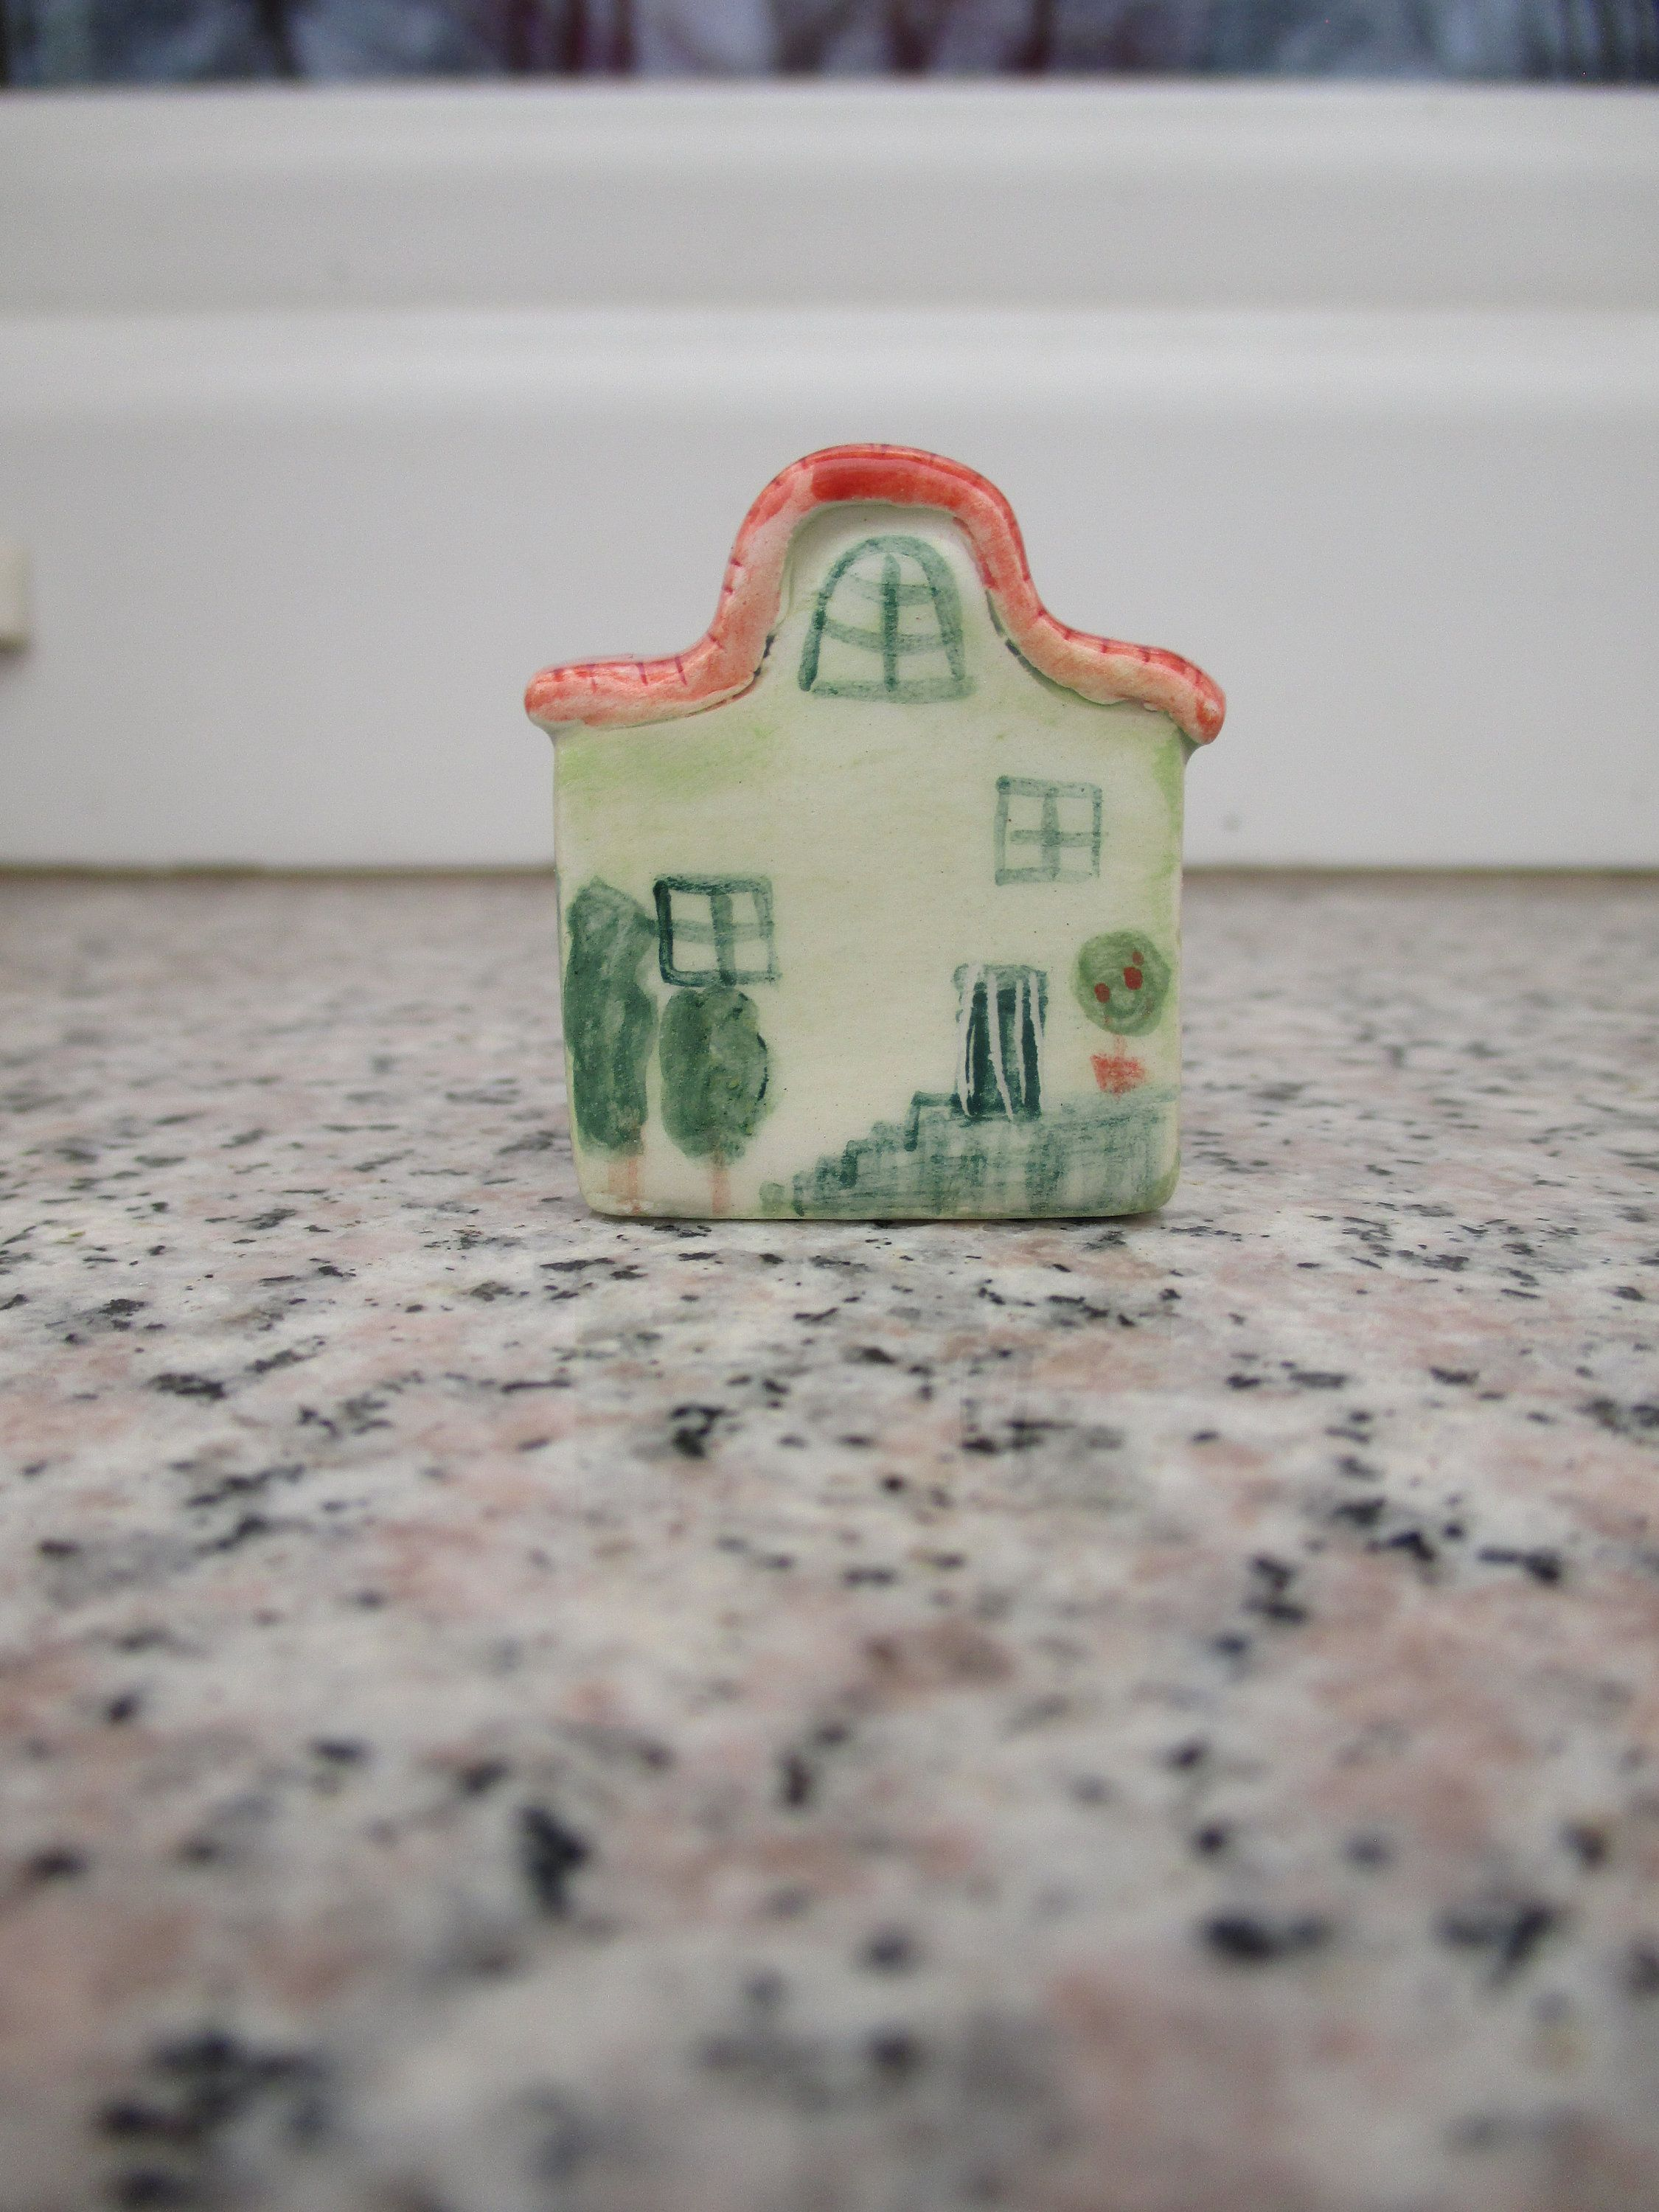 Little Green Ceramic House Small Pottery House Small Green House Miniature House Pottery Small Details Small Village Shellf Decor In 2020 Green Ceramics Pottery Houses Ceramic Houses